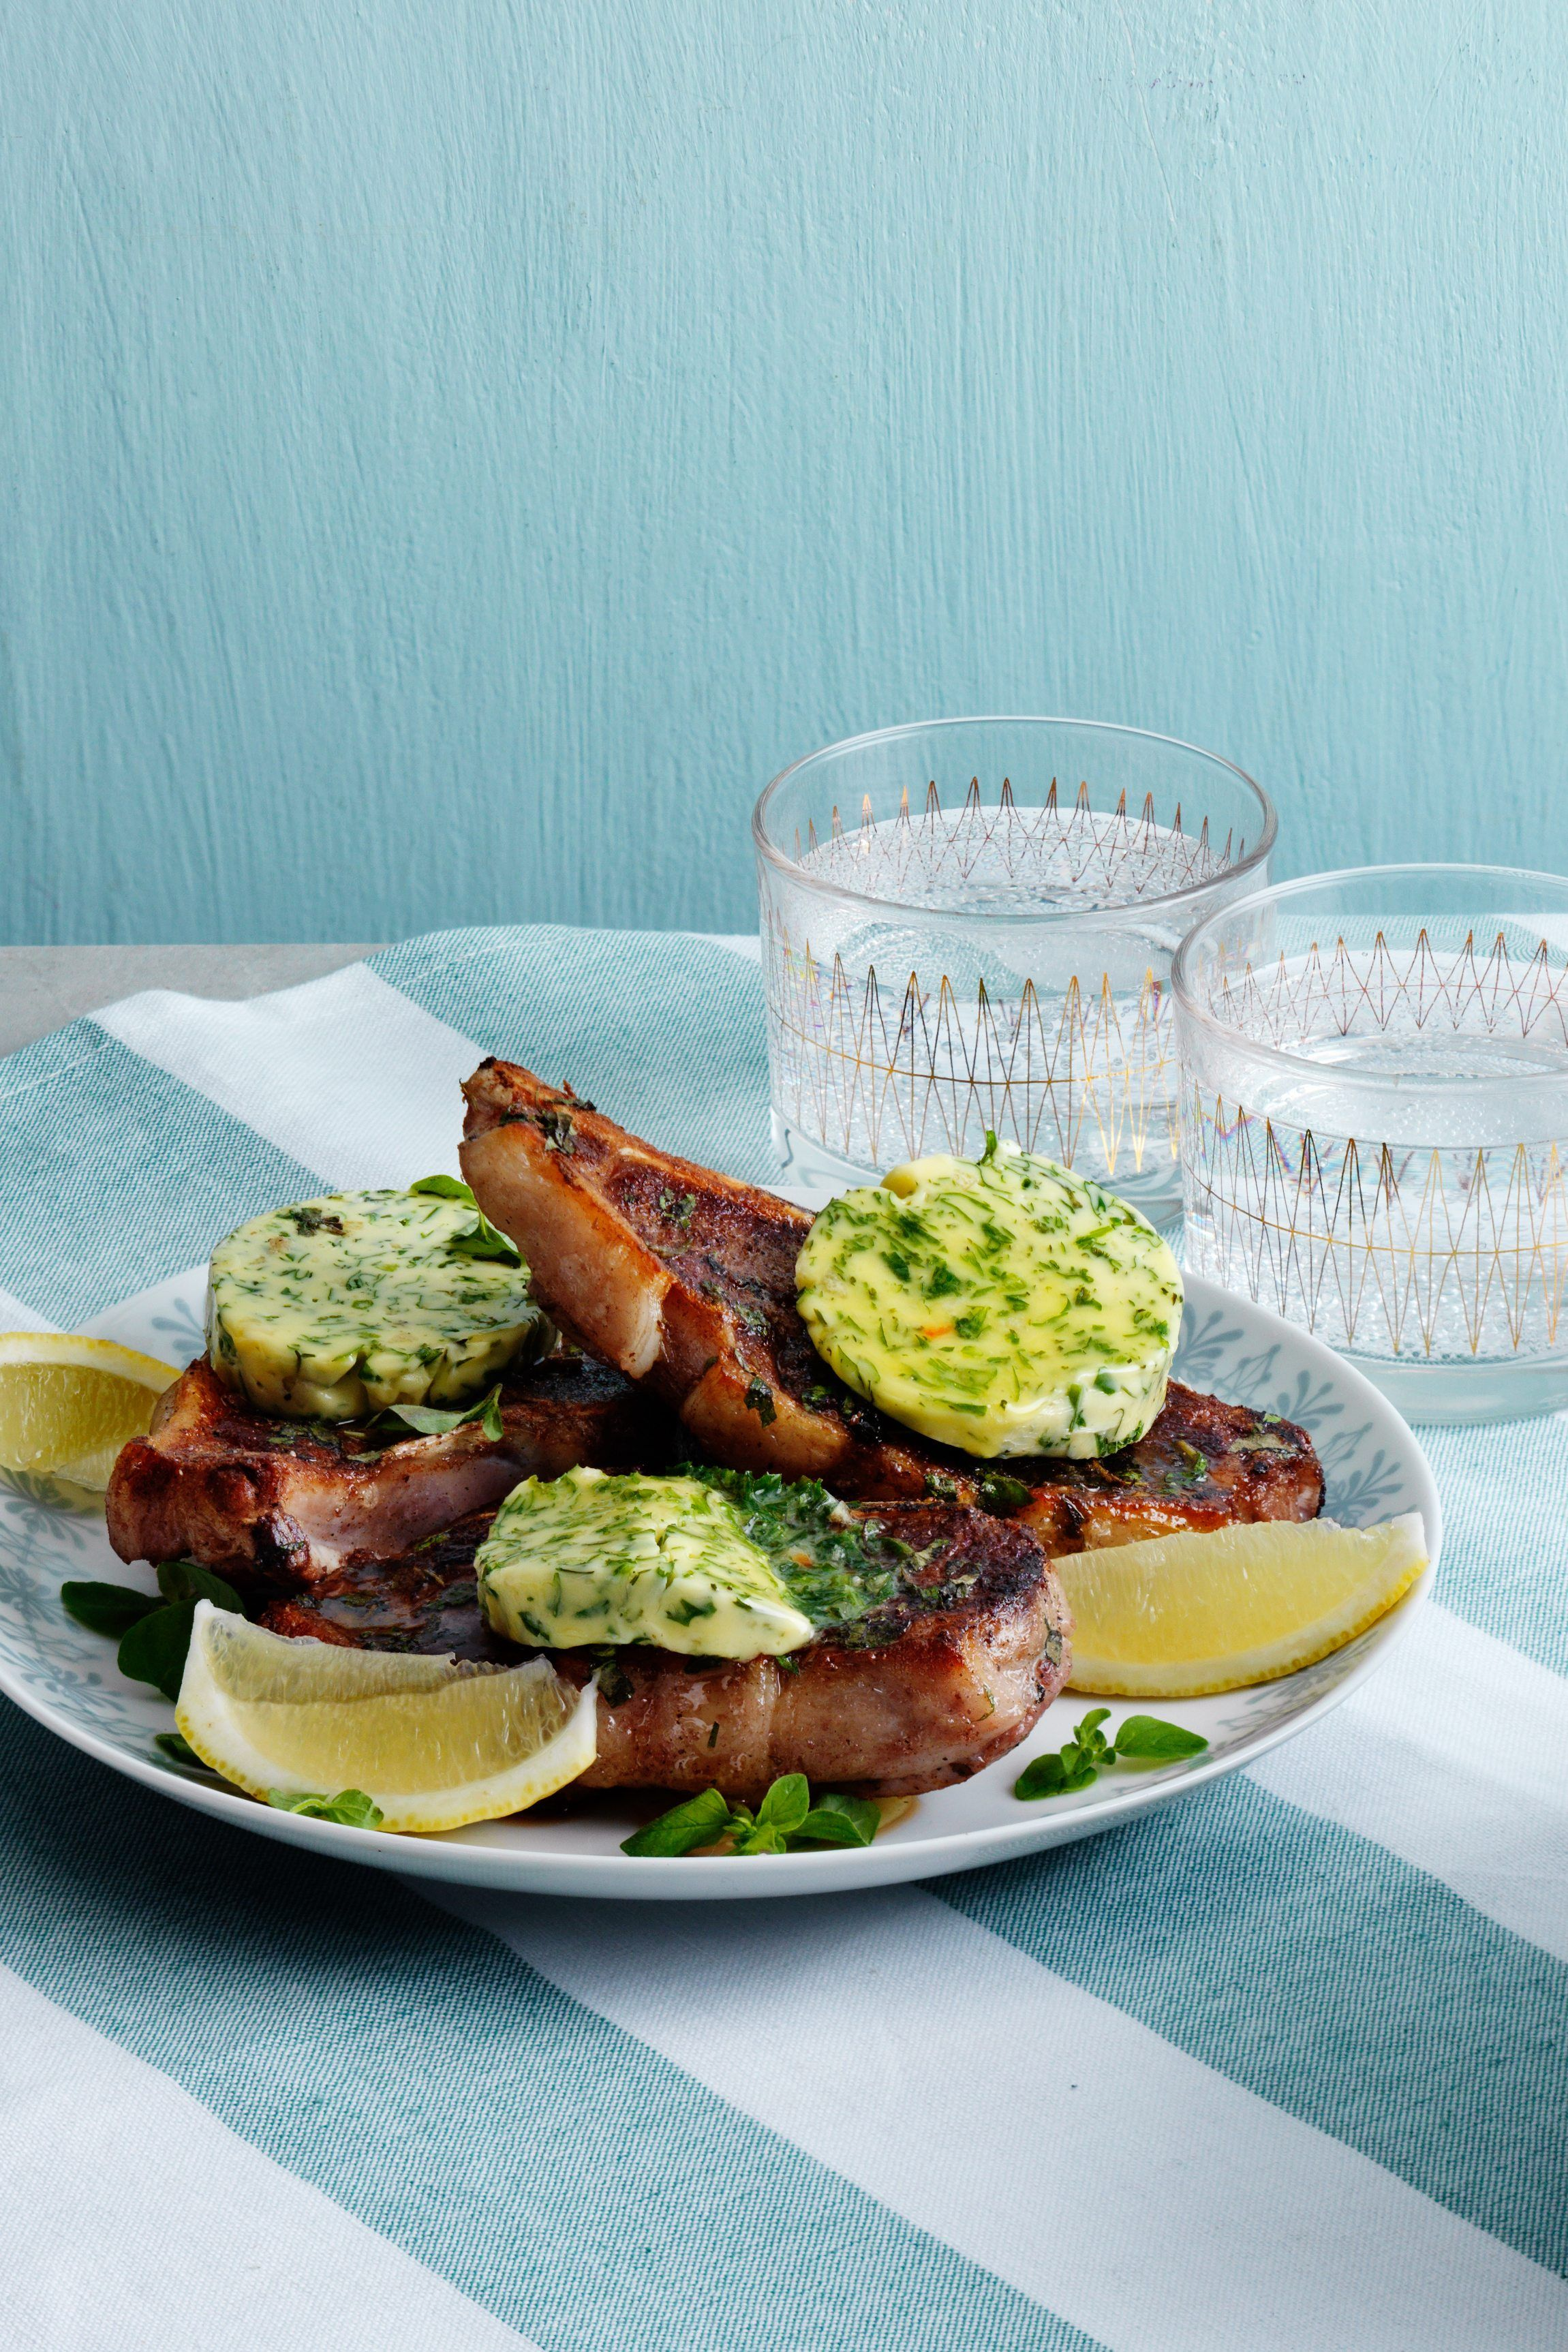 A truly delicious, yet very simple, meal. Fried lamb chops with herb butter and lemon tastes heavenly. If you don't like lamb, you can use pork or beef.